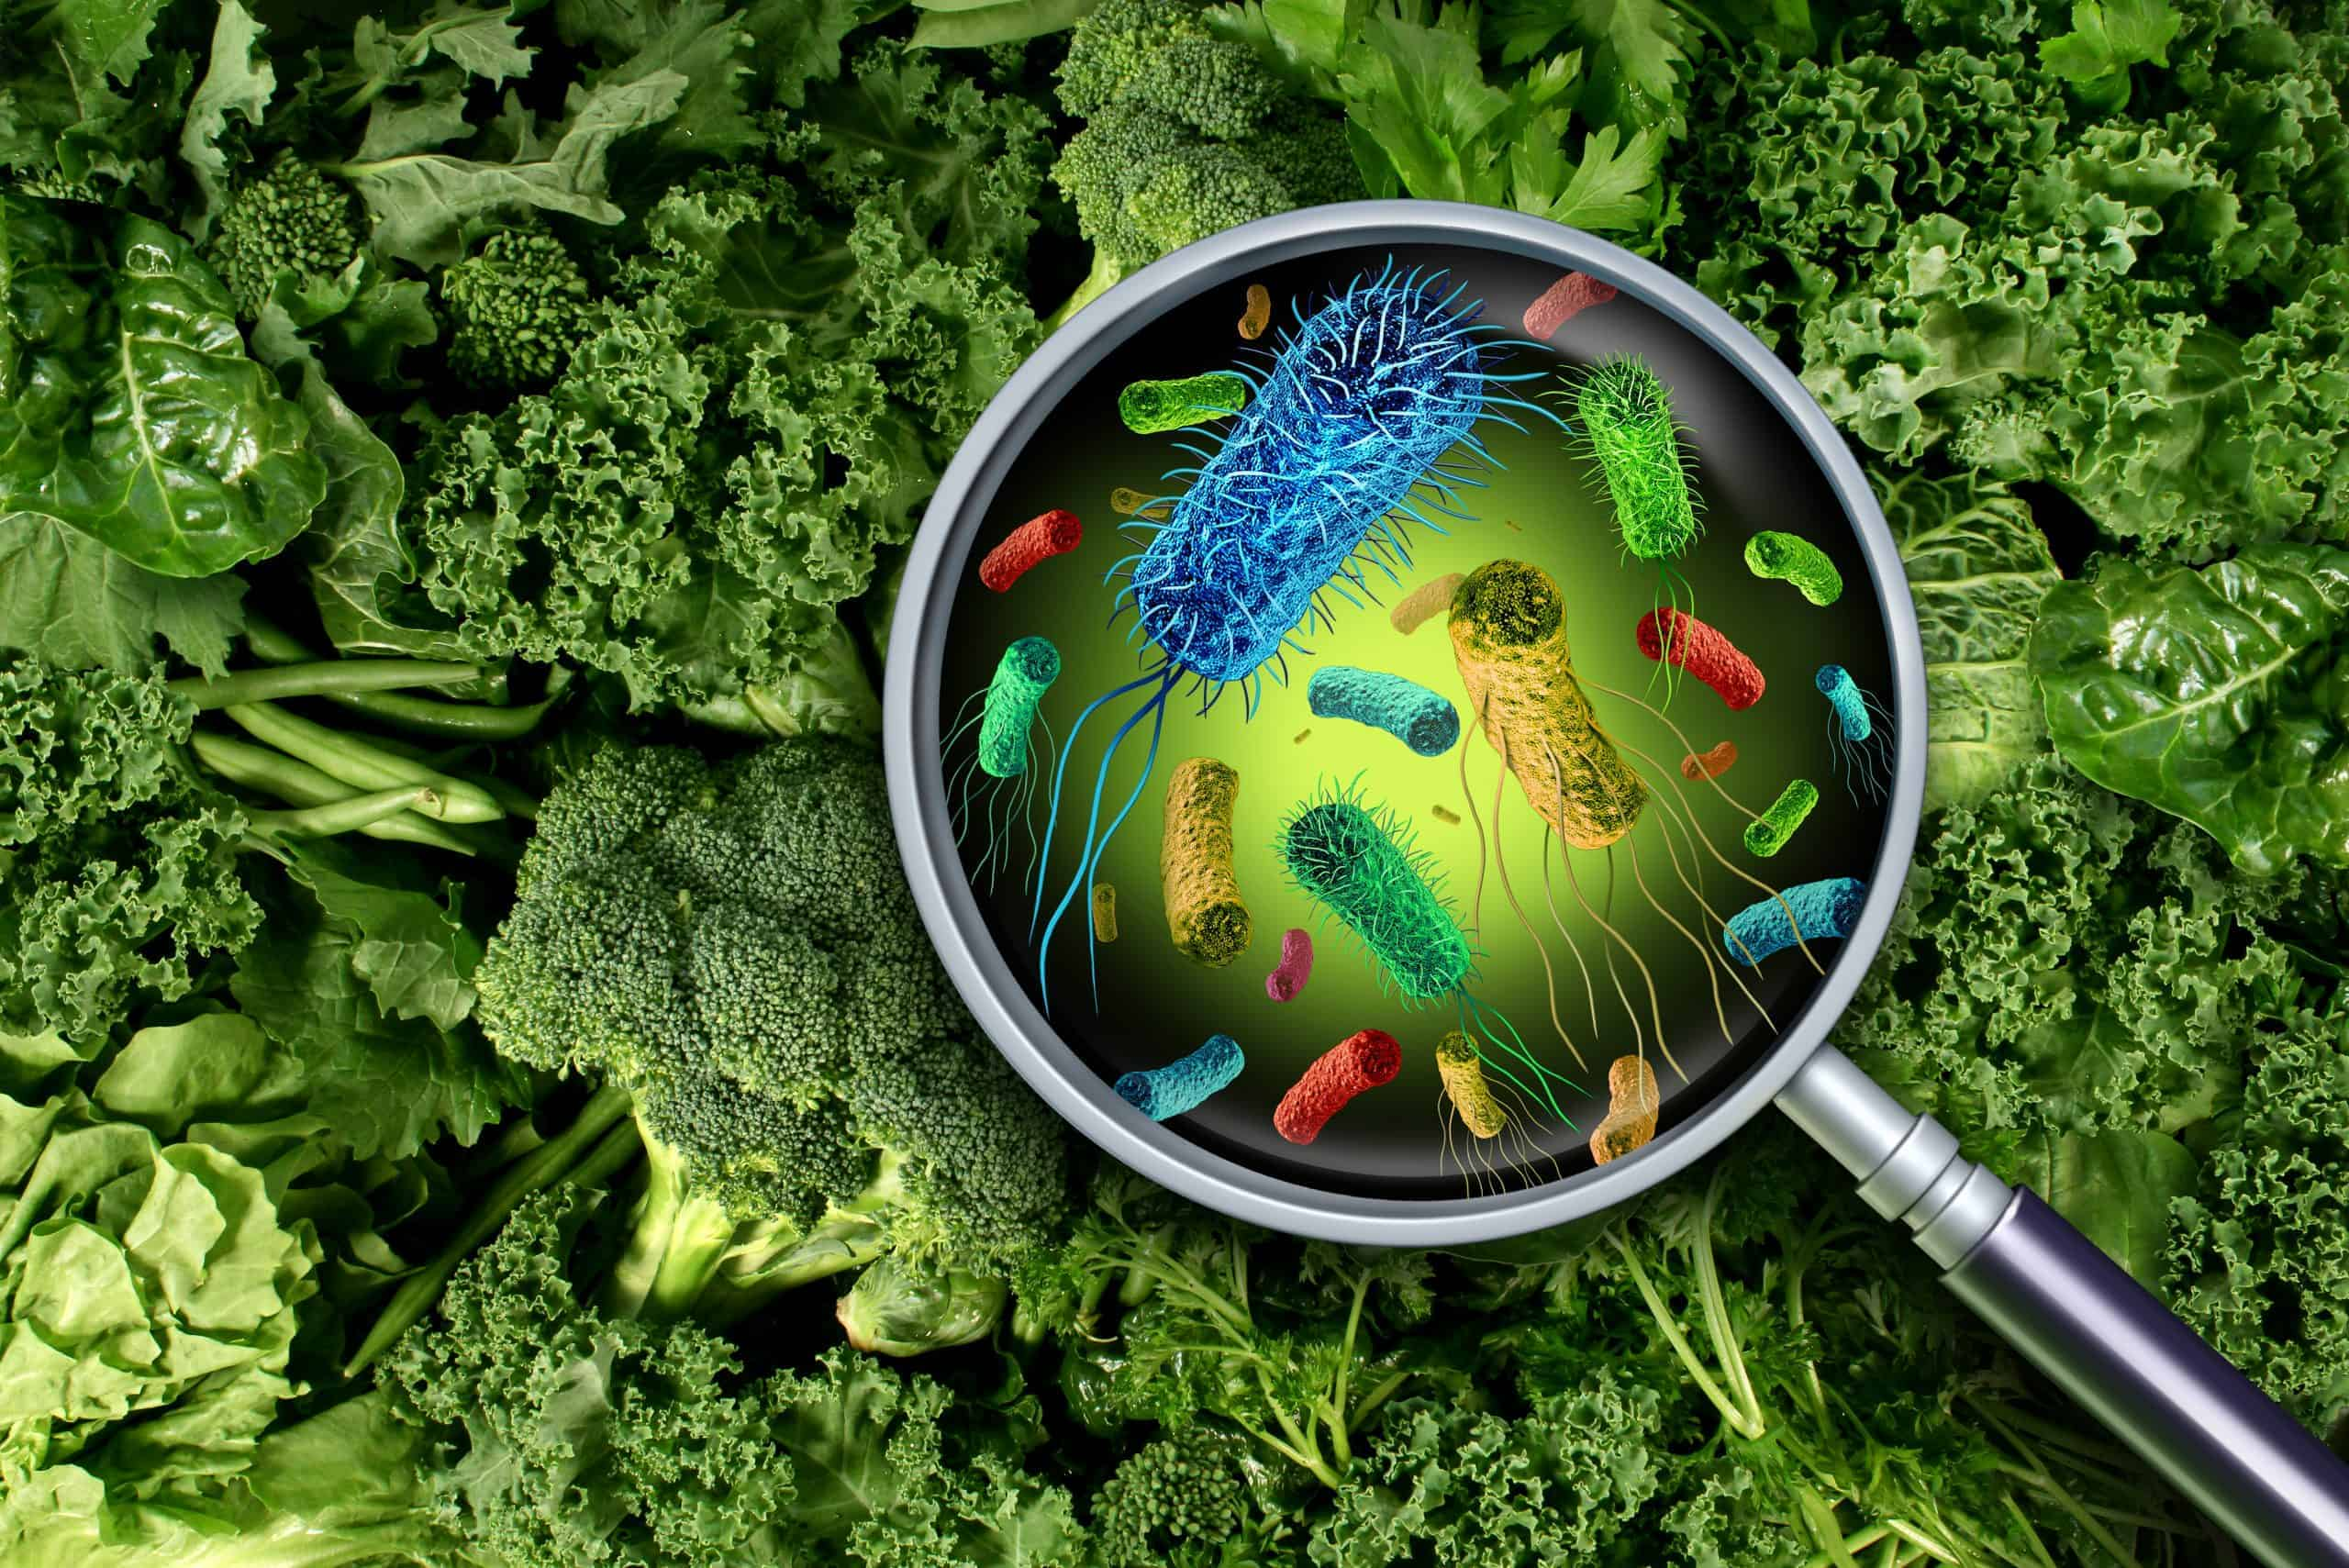 Bacteria and germs on vegetables under magnifying glass